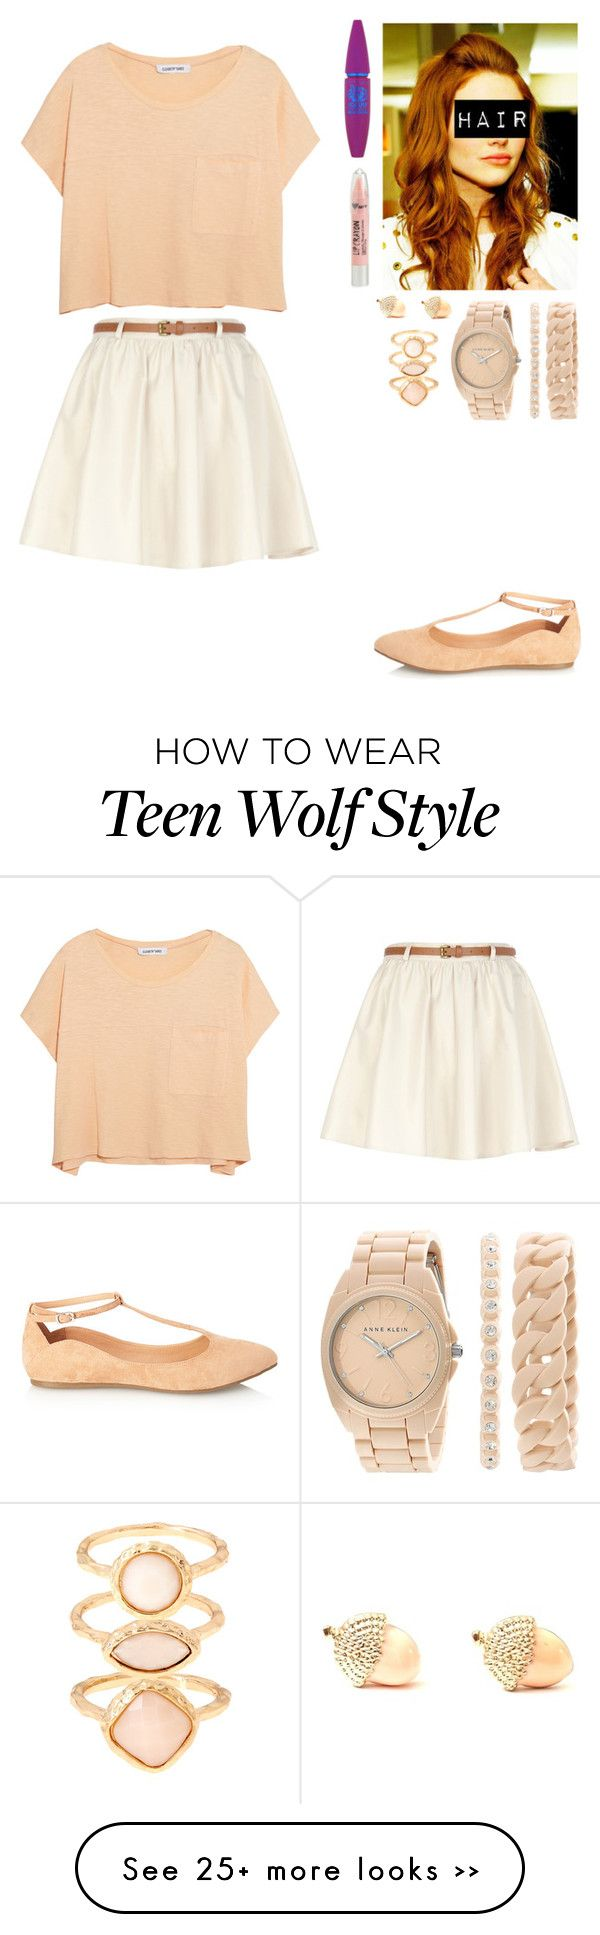 """"""\ the indentions of your fingerprints still scar my skin //"""" by tangie-leigh on Polyvore featuring Forever 21, River Island, Elizabeth and James, Aéropostale, Maybelline, Monsoon, Anne Klein, beige, pastels and goldjewelry""600|1935|?|en|2|722d05c14eb00ddf43ad48b45fd152a5|False|UNLIKELY|0.33559906482696533